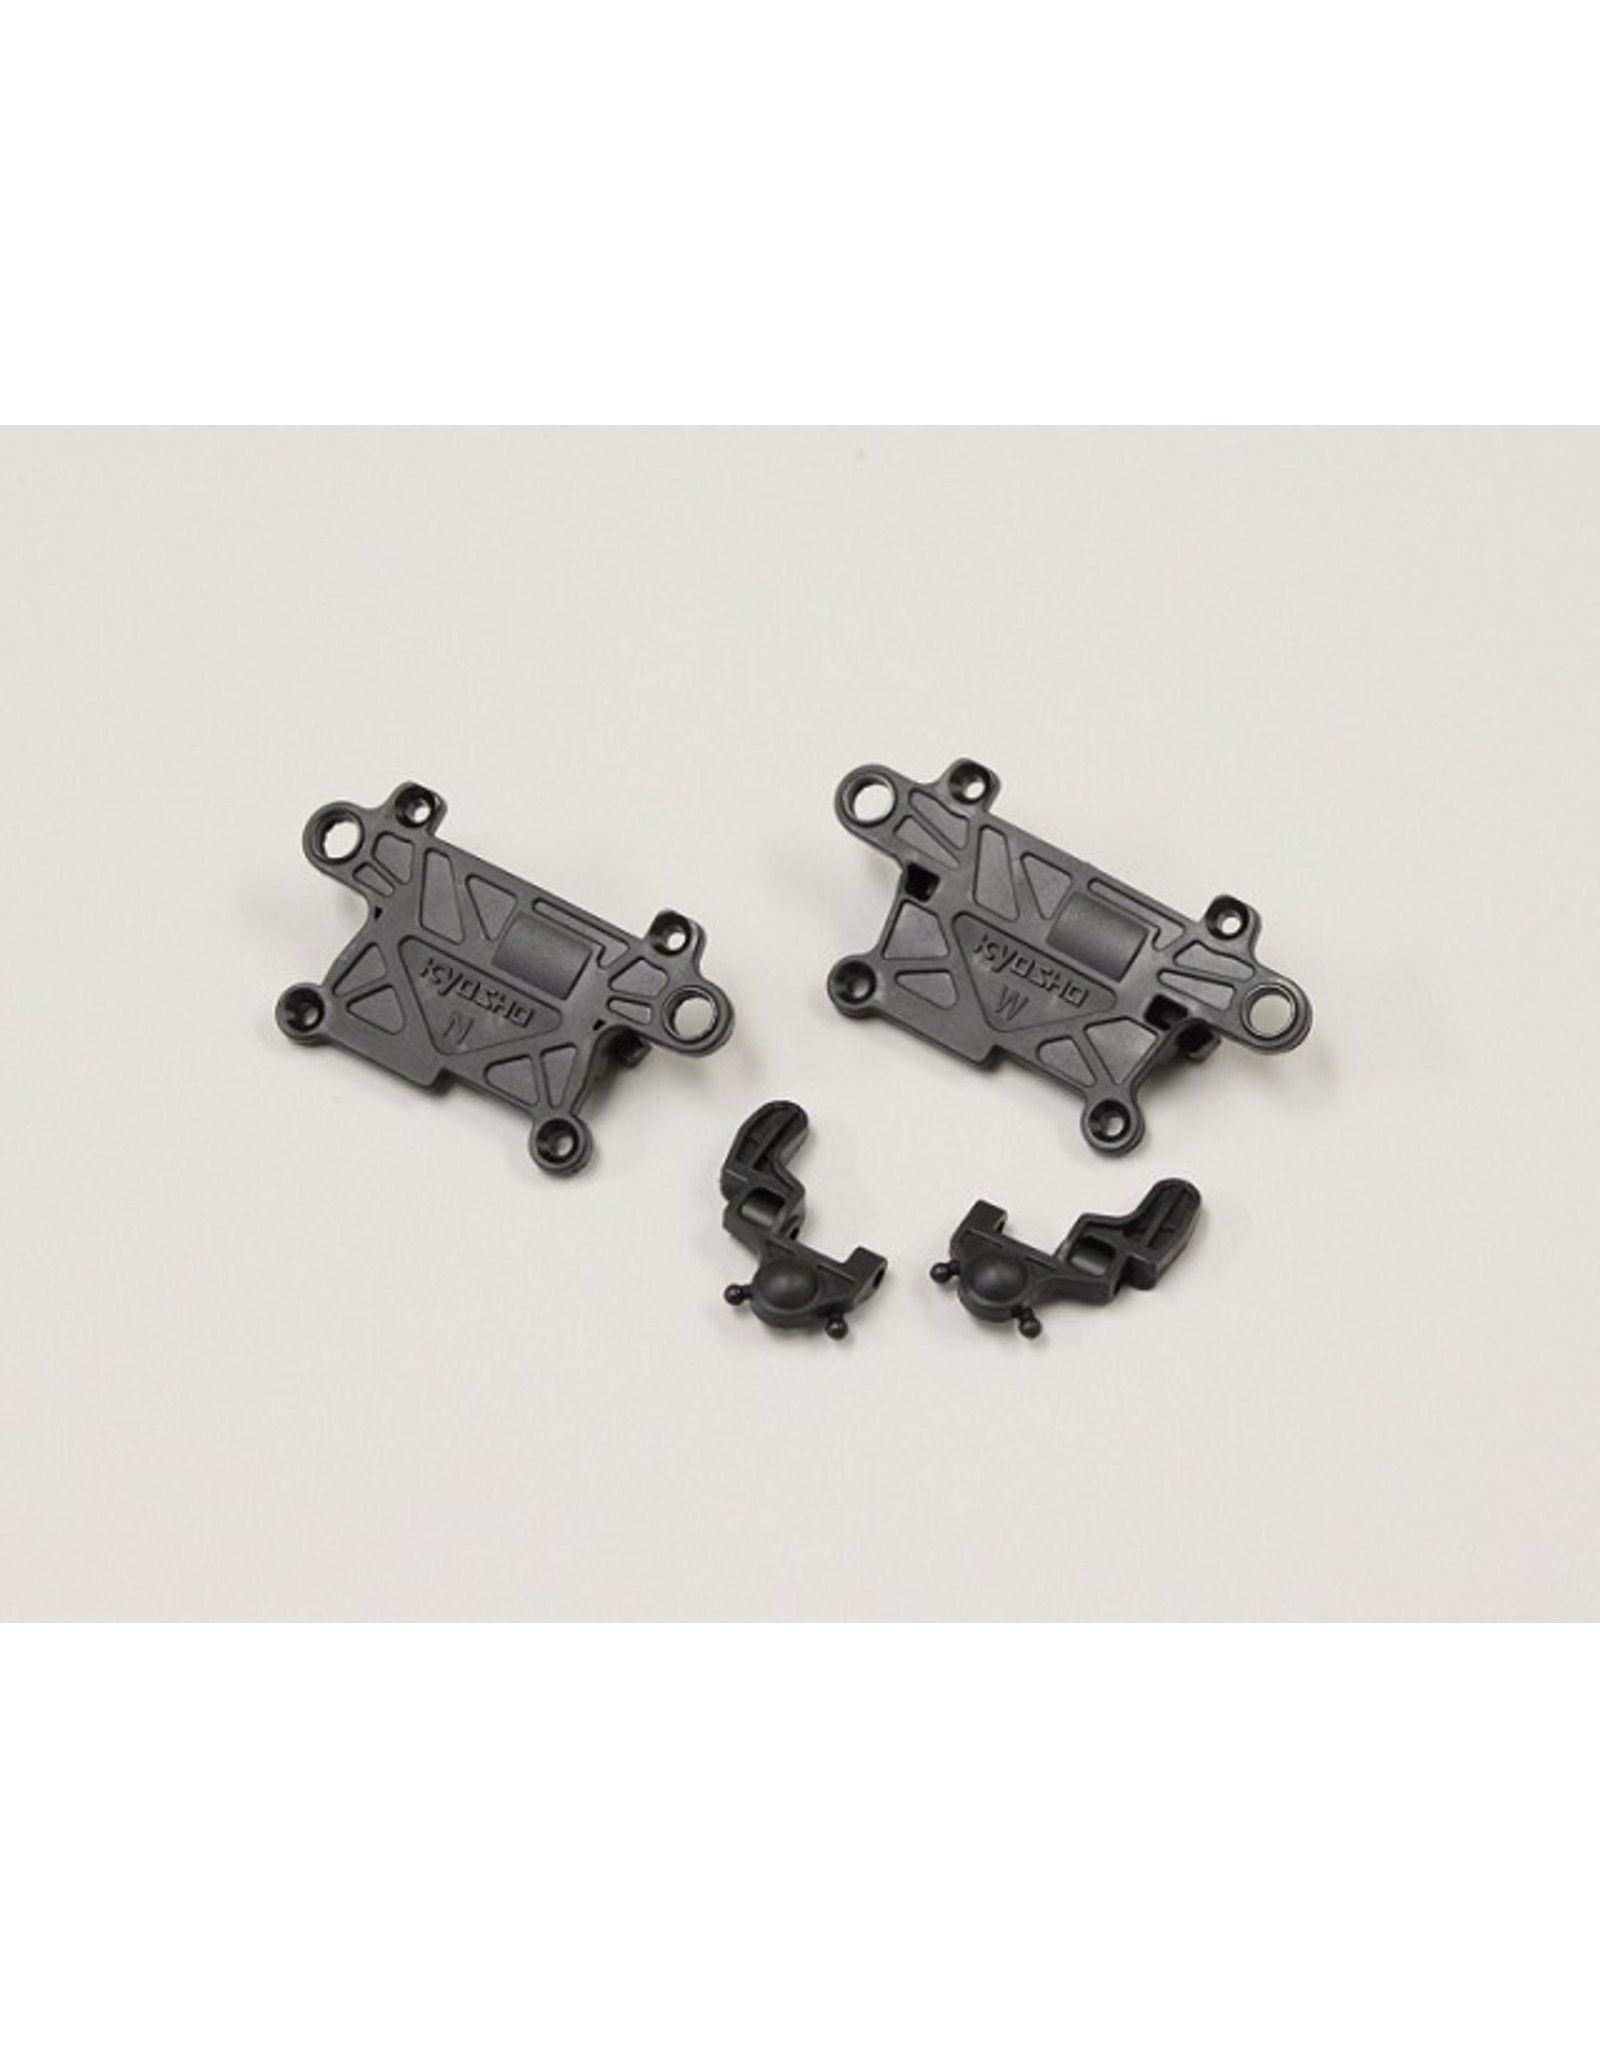 Kyosho Front Suspension Arm Set (AWD)  (MD202)